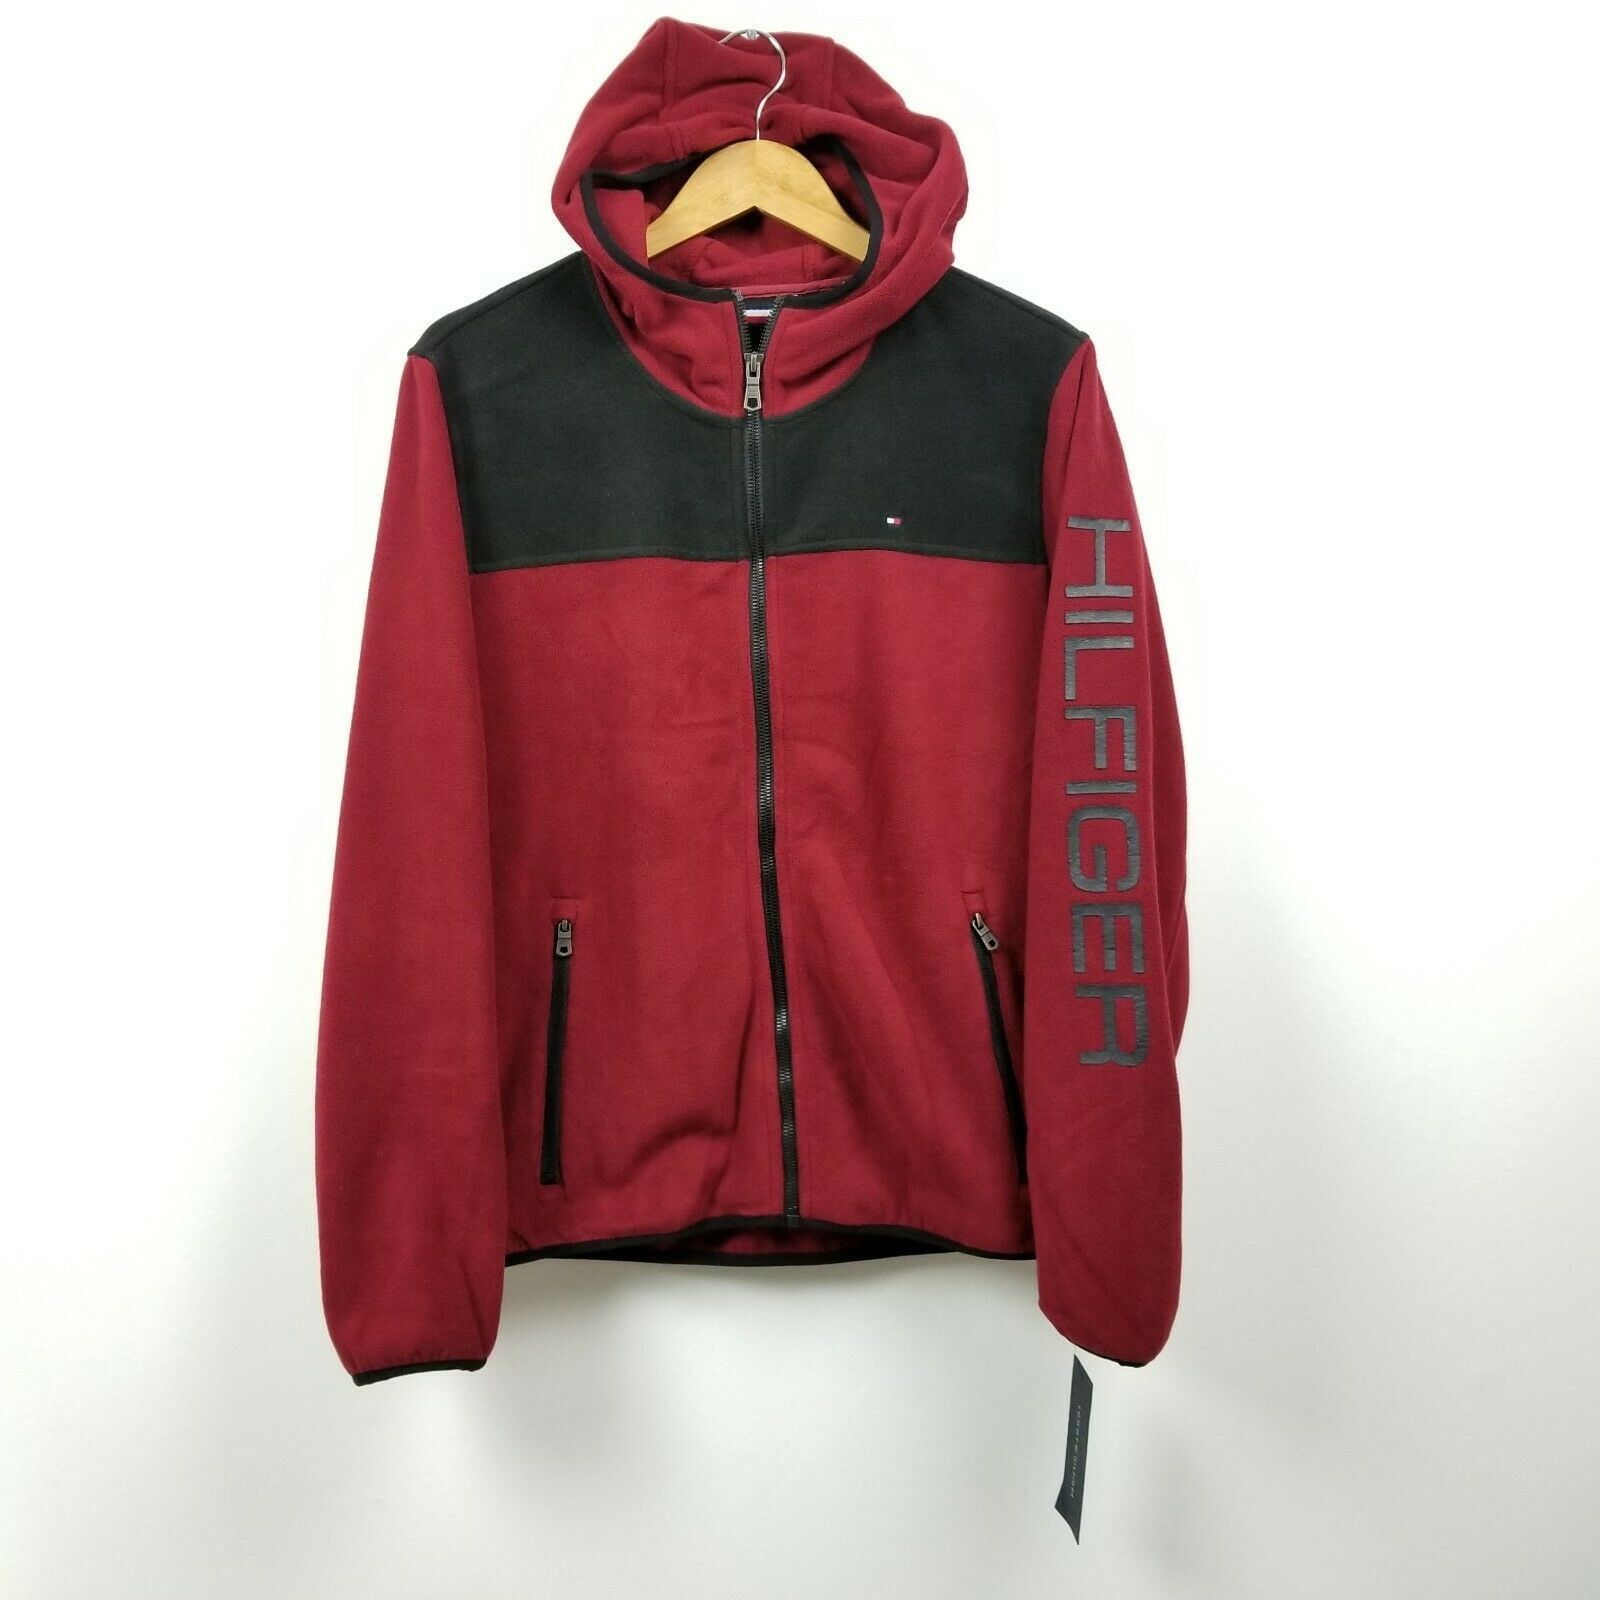 Primary image for Tommy Hilfiger Mens Fleece Hoodie Jacket Small S Red Black Spellout NWT $160